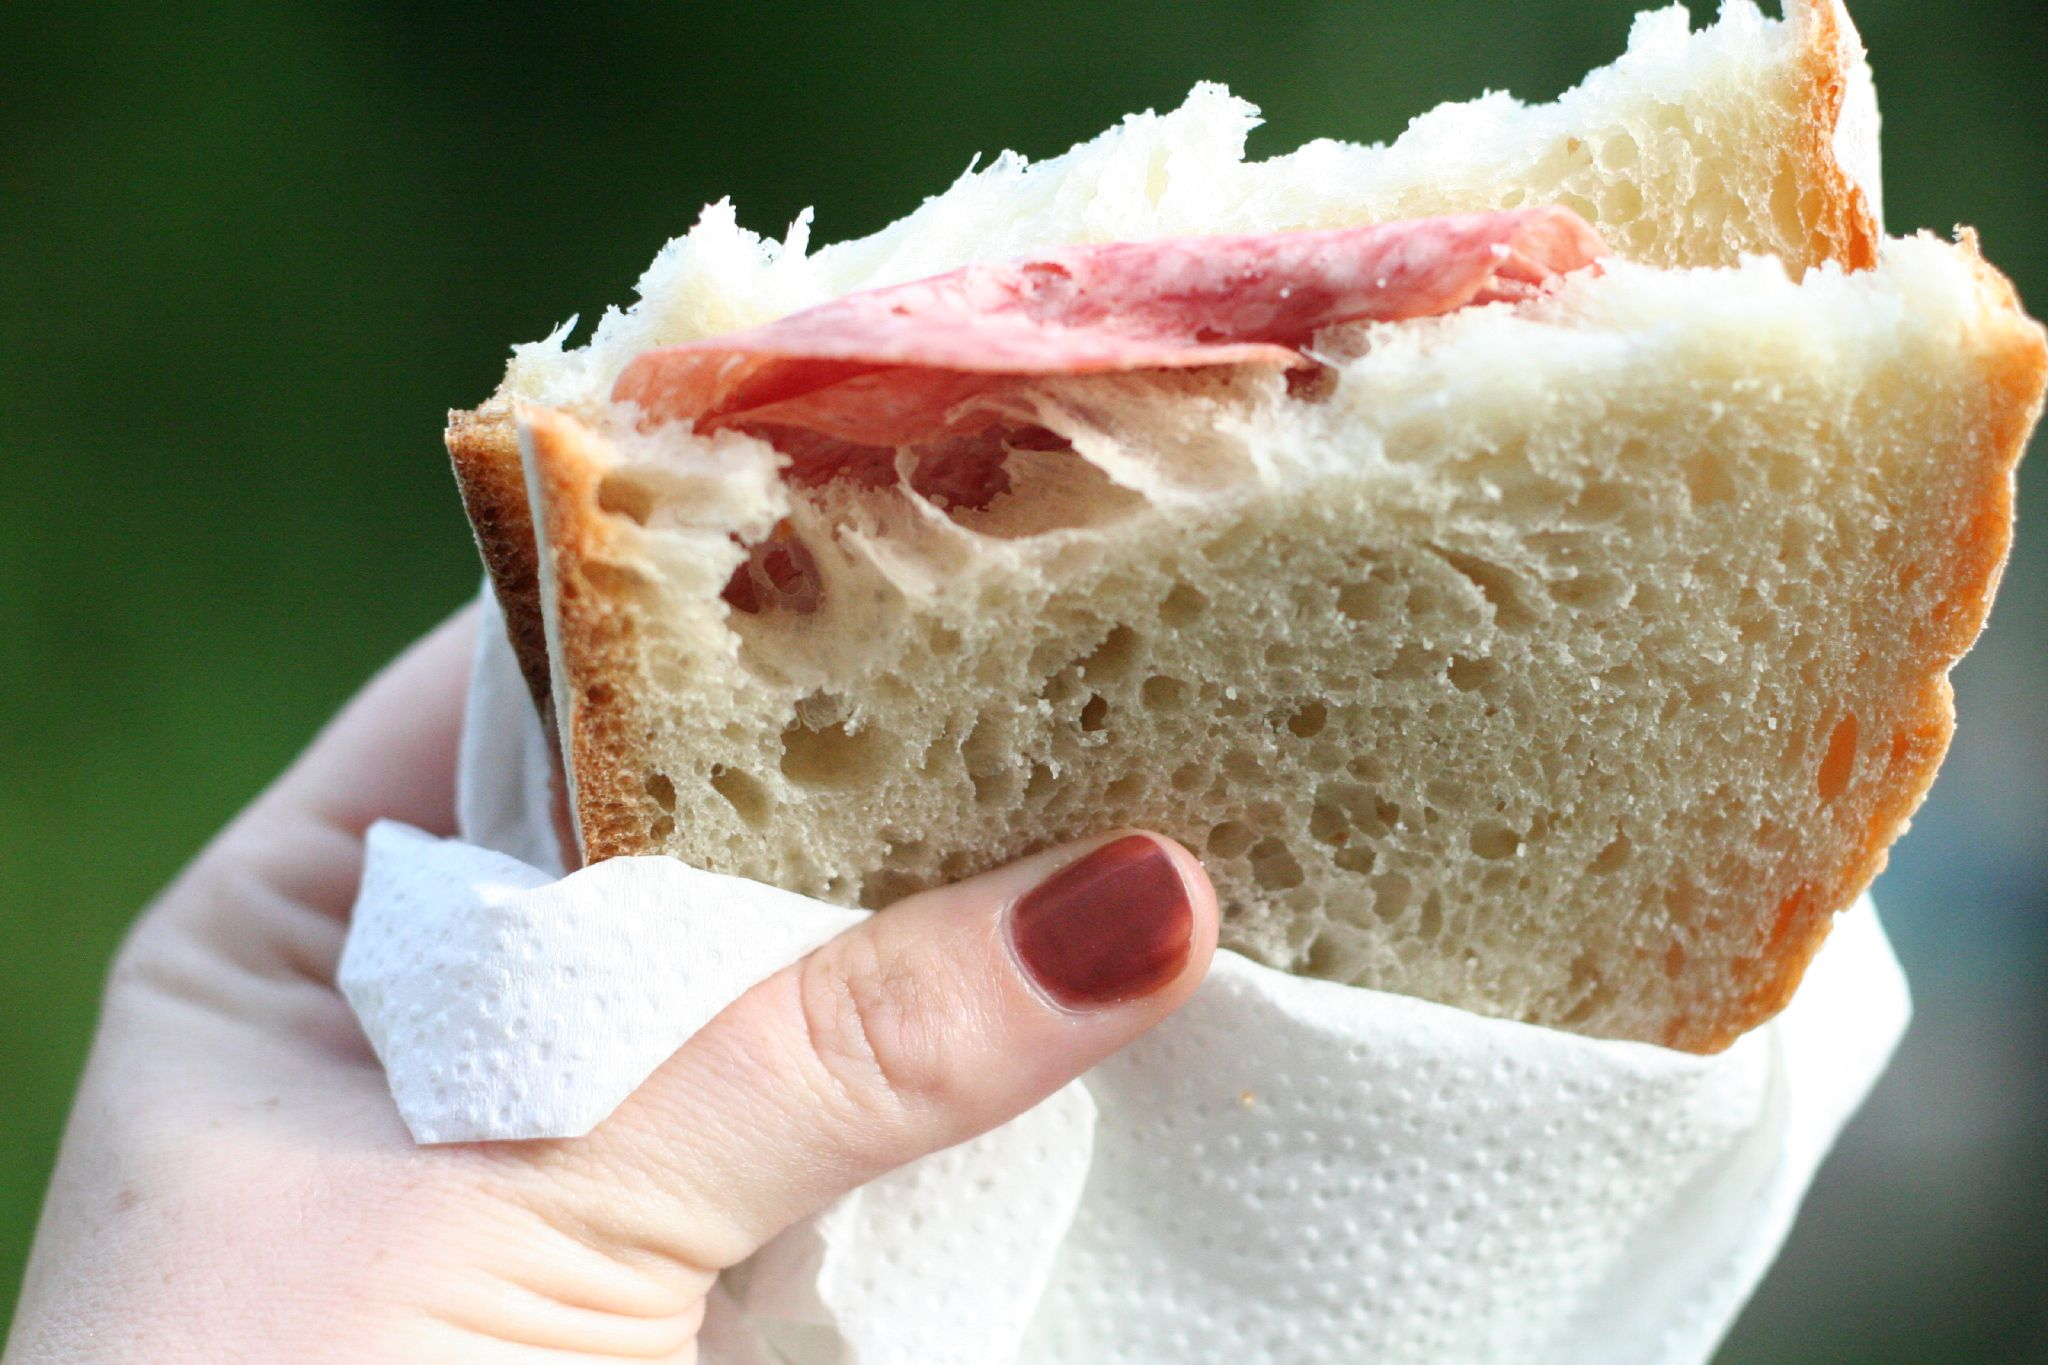 http://upload.wikimedia.org/wikipedia/commons/d/df/Salami_sandwich.jpg